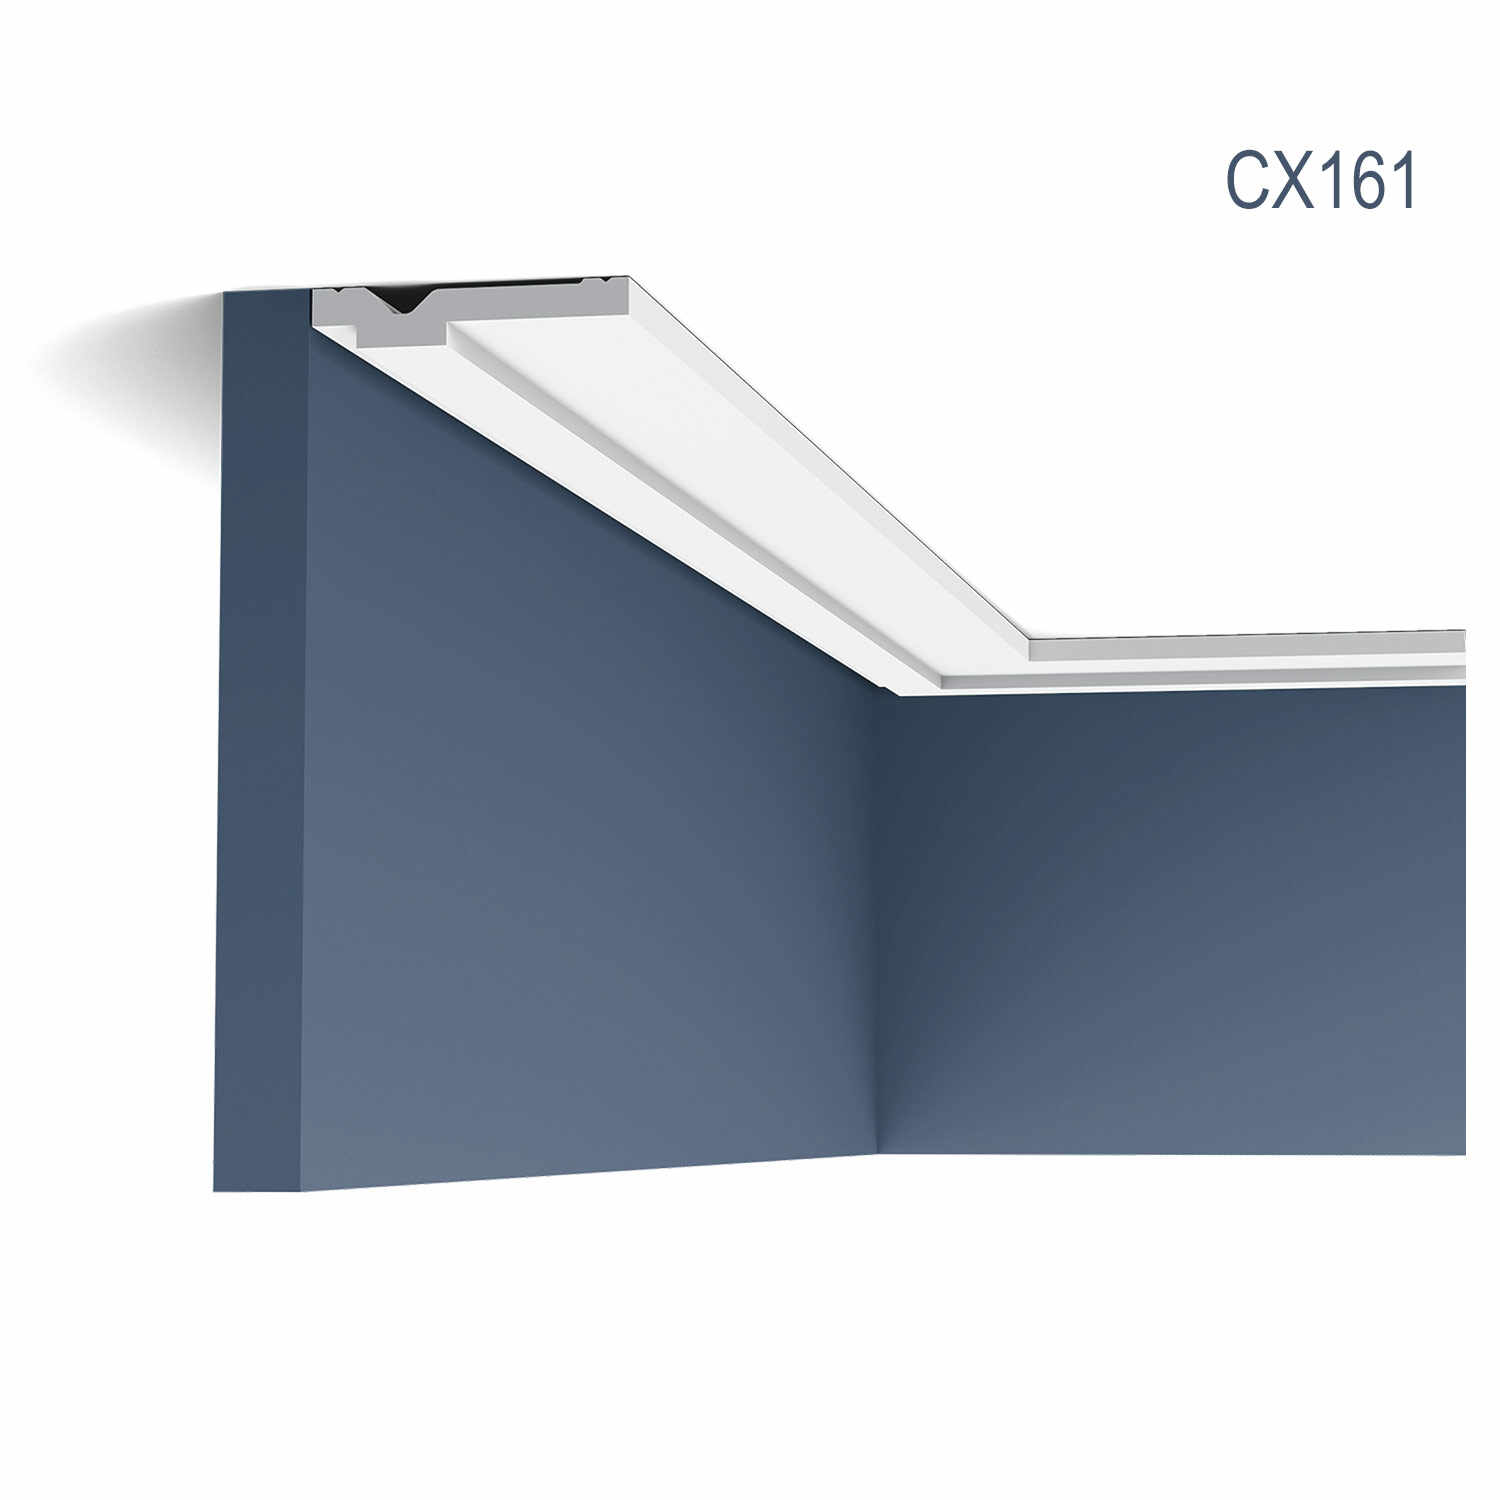 Cornisa Axxent CX161, Dimensiuni: 200 X 1.3 X 6.9 cm, Orac Decor